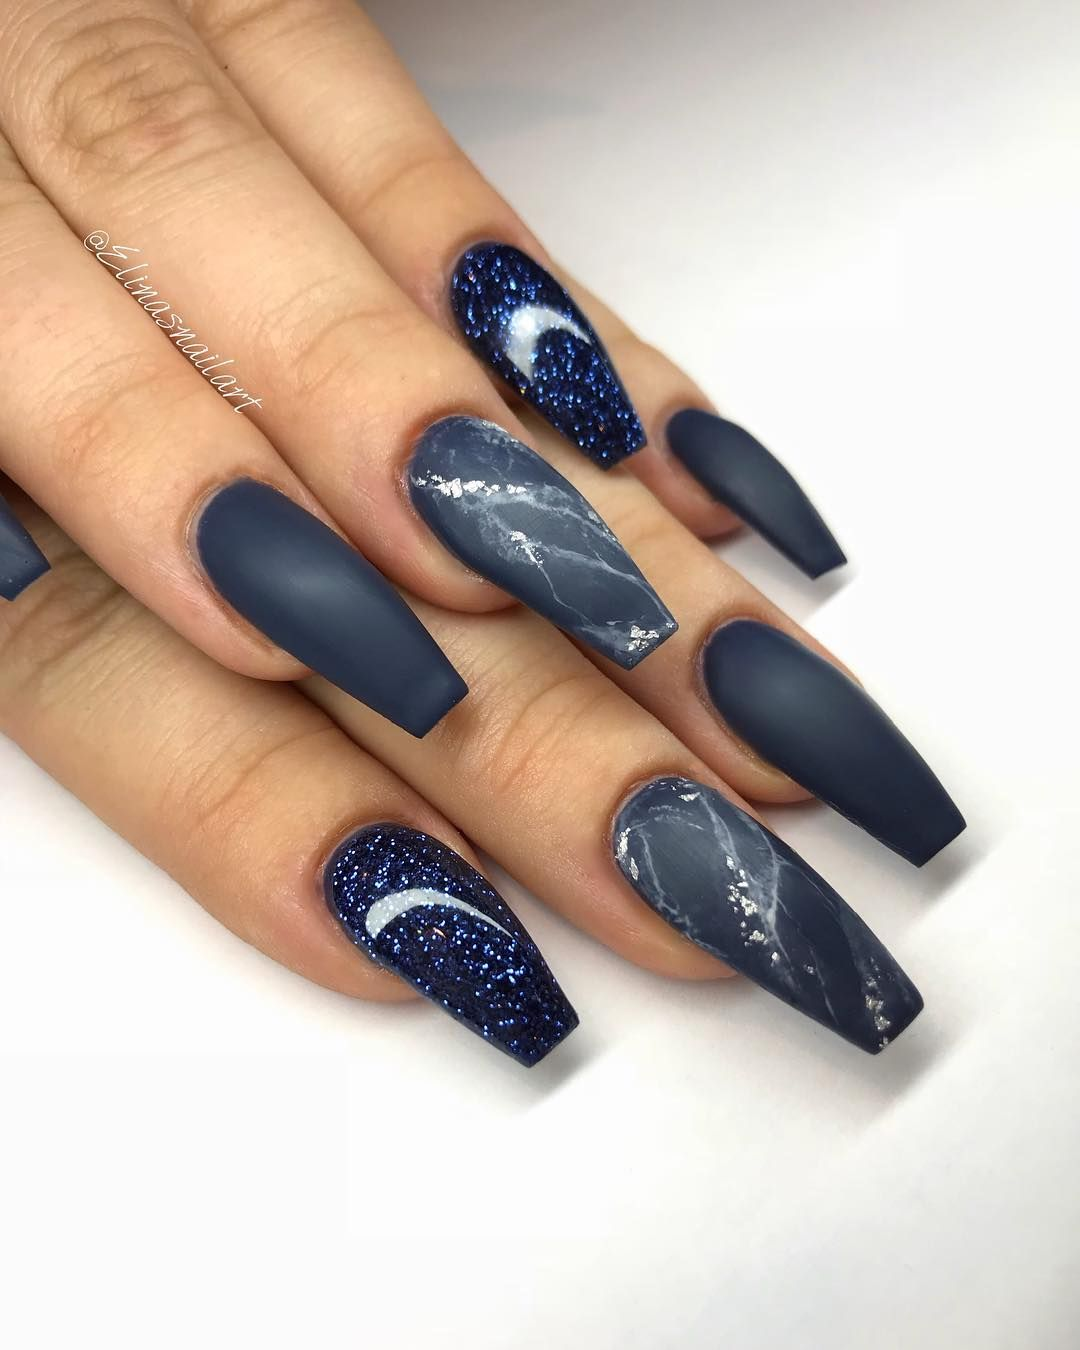 25 Best Coffin Nail Designs Luxury Nails Blue Coffin Nails